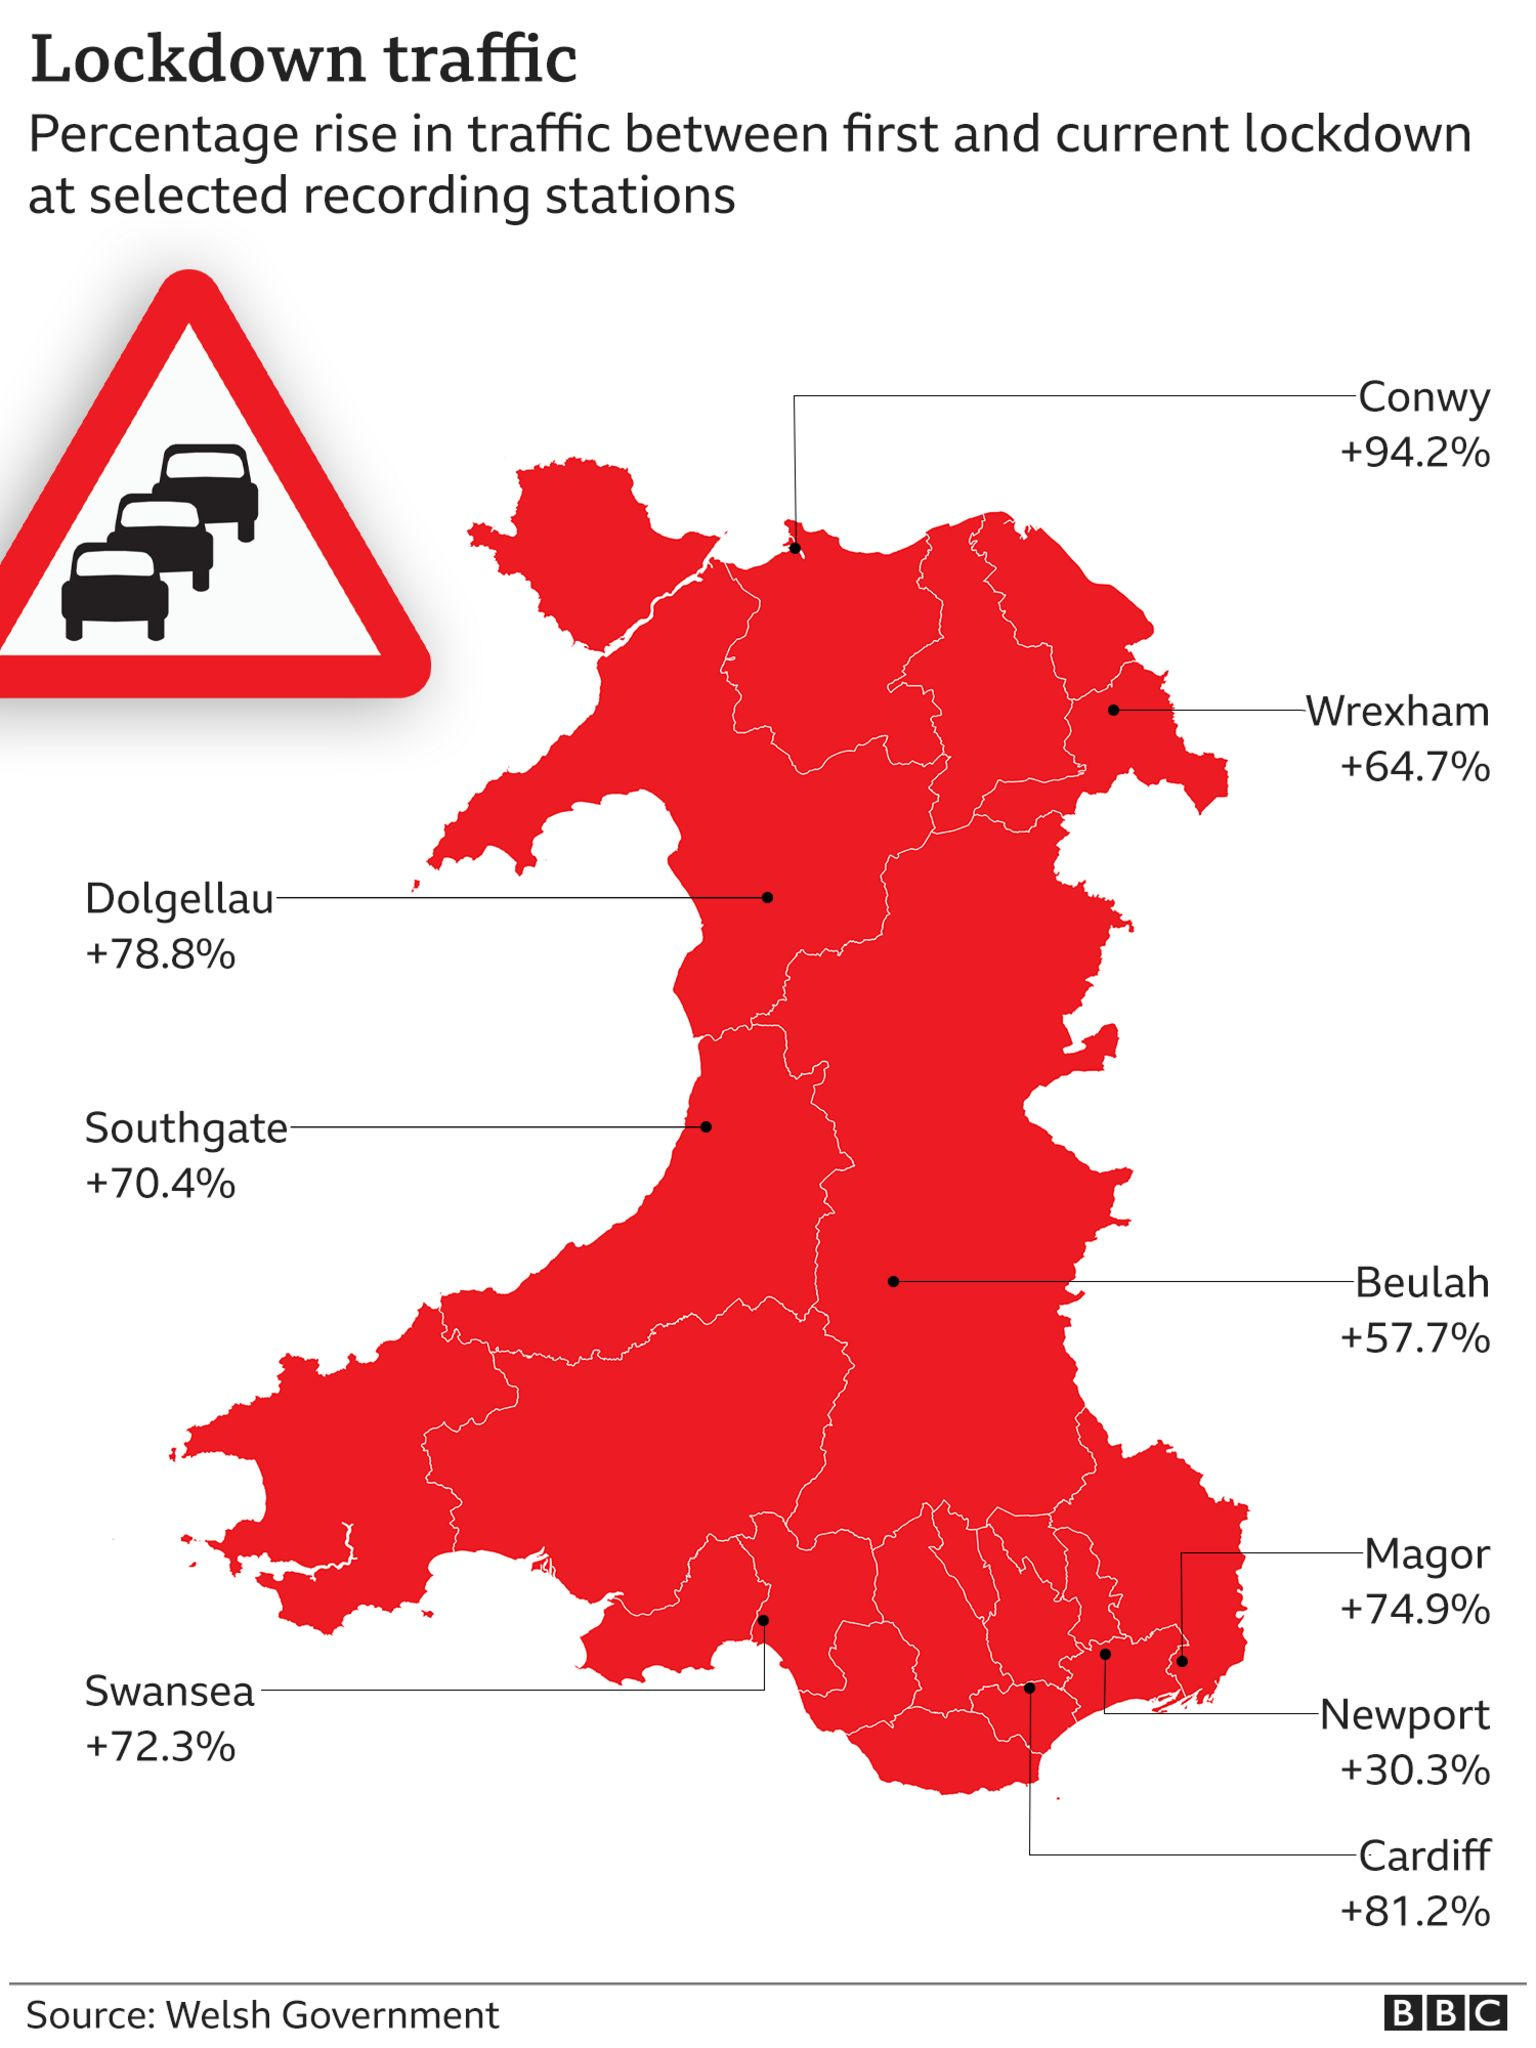 Map of wales showing traffic increase in percentages